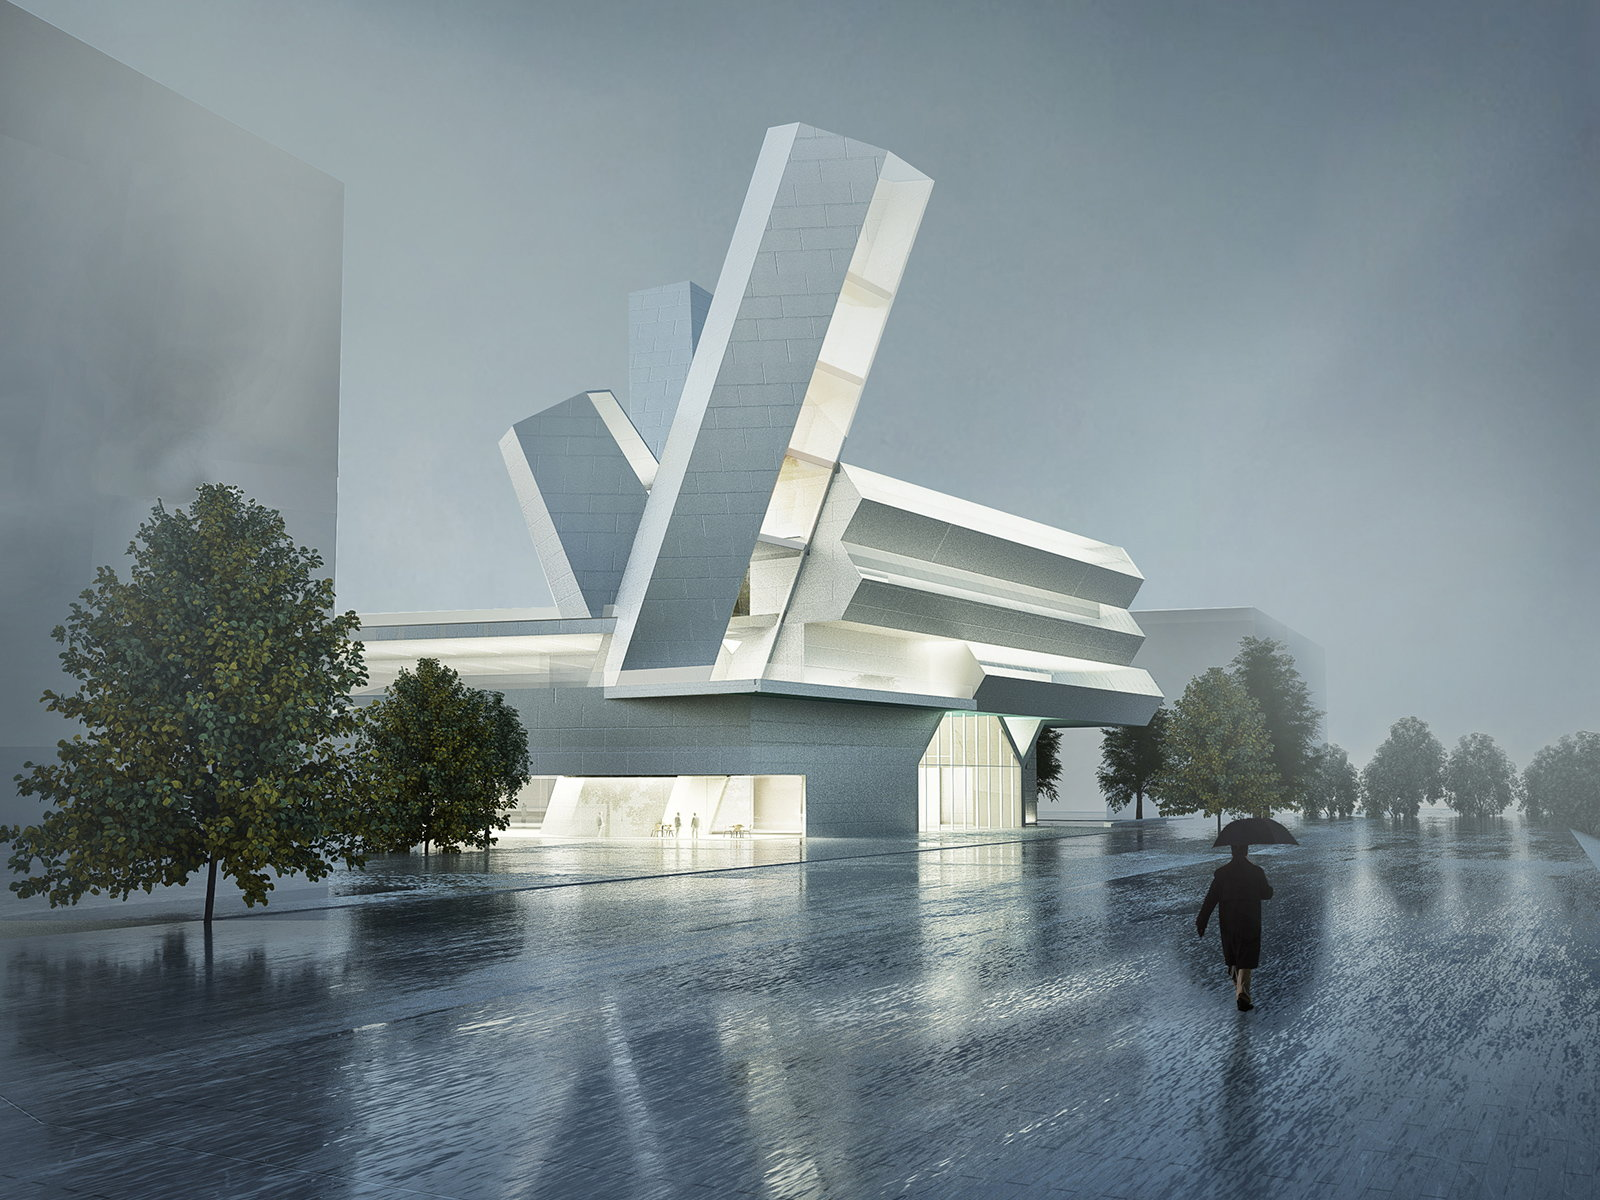 University College Dublin Future Campus by Steven Holl Architects